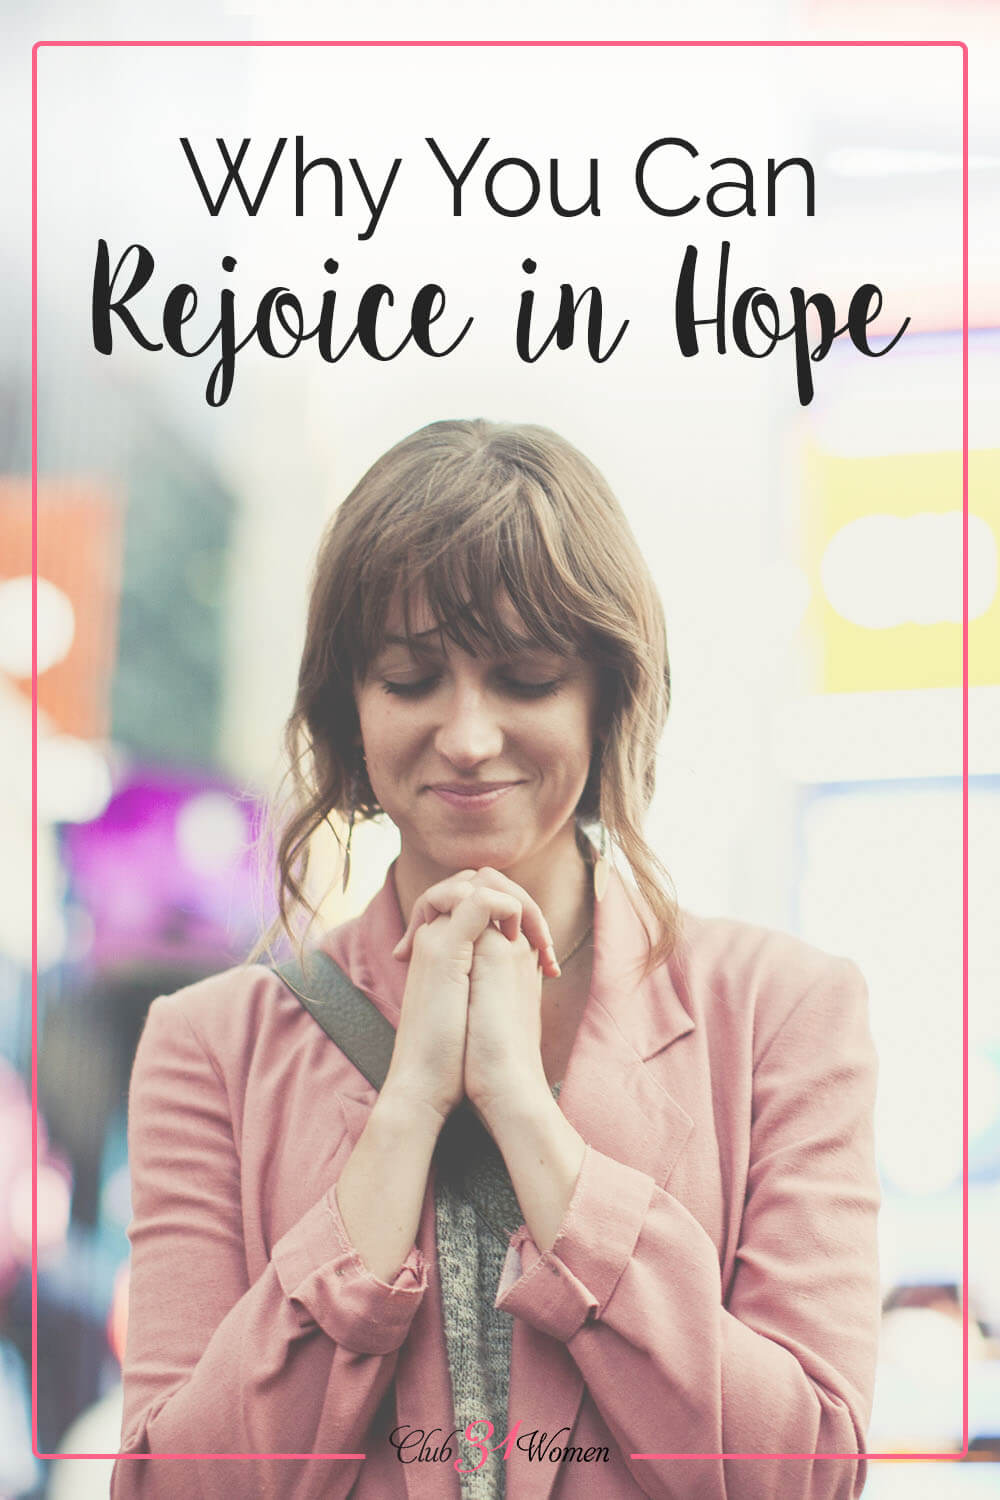 Even when life feels heavy and dim, we can rejoice in hope. God holds our future and that is great reason to trust and hope in Him! via @Club31Women